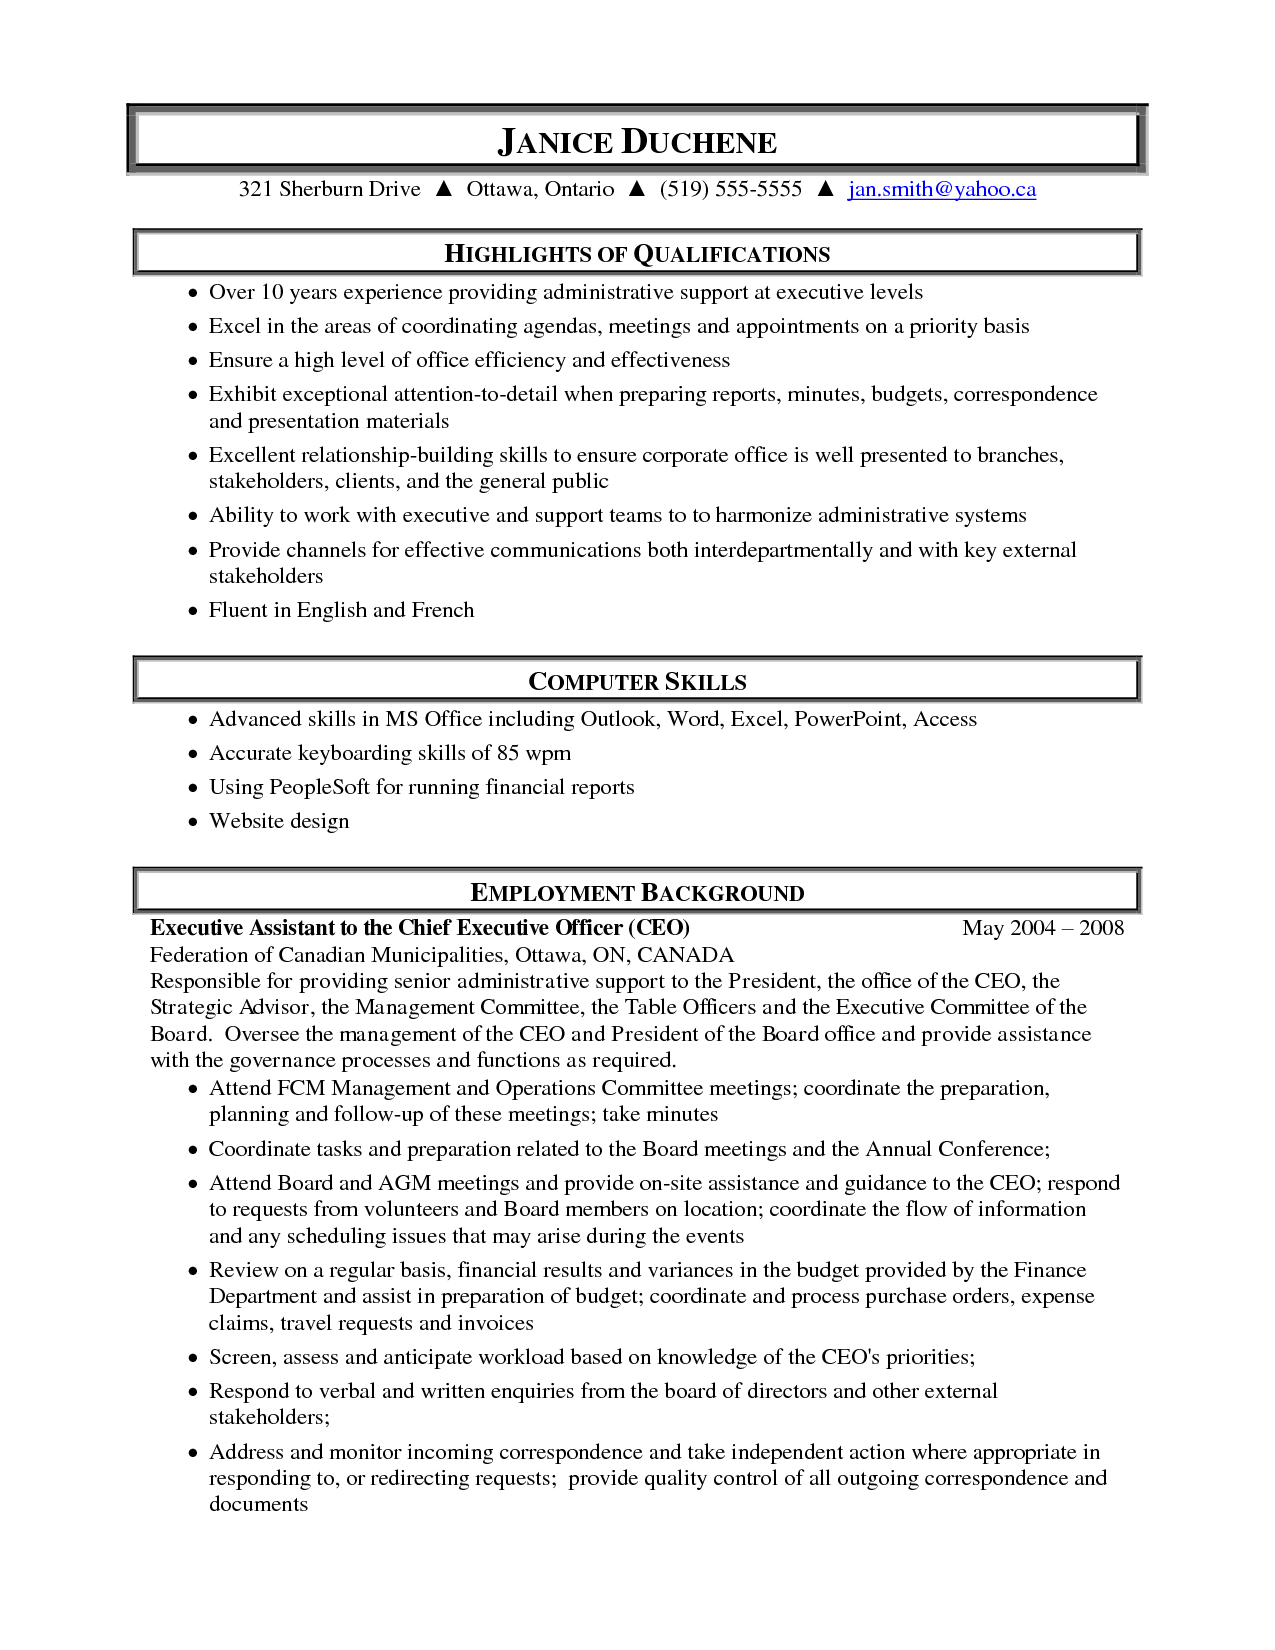 Medical Administrative Assistant Resume Samples Highlight